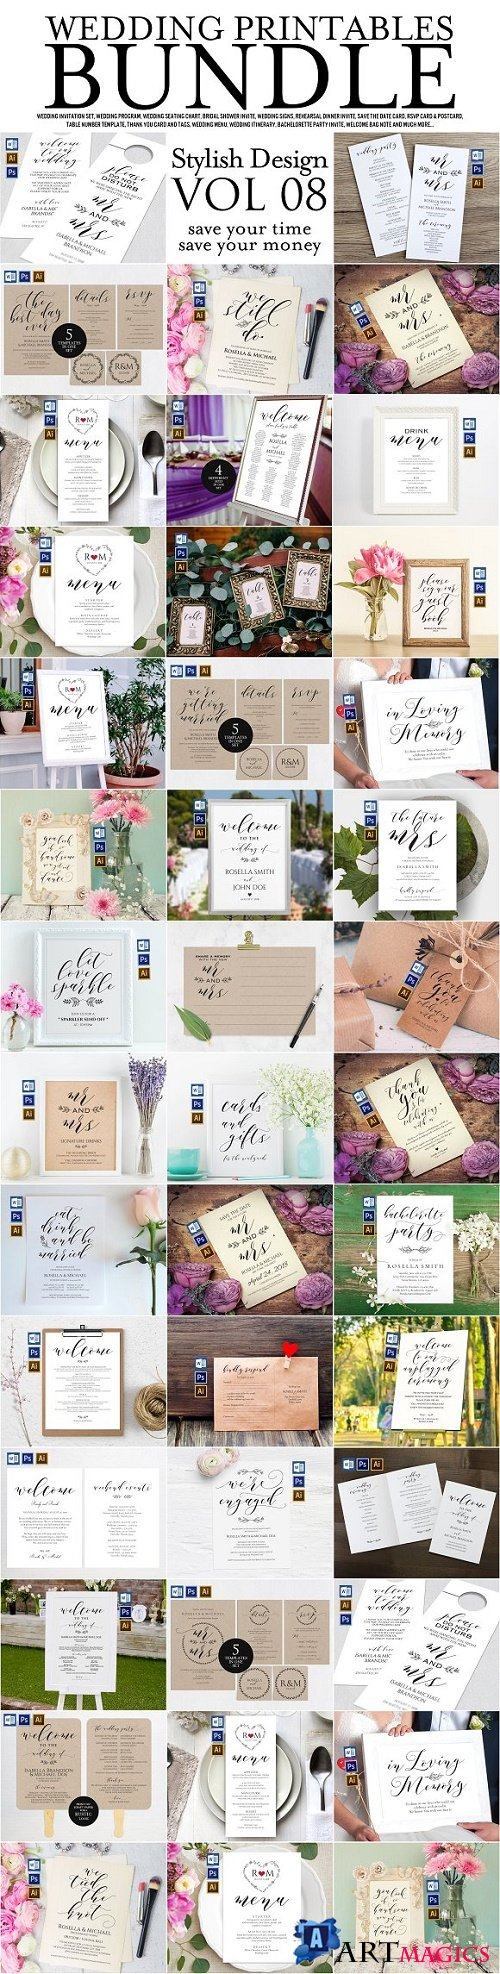 Wedding Printables Bundle Style. 8 2301453